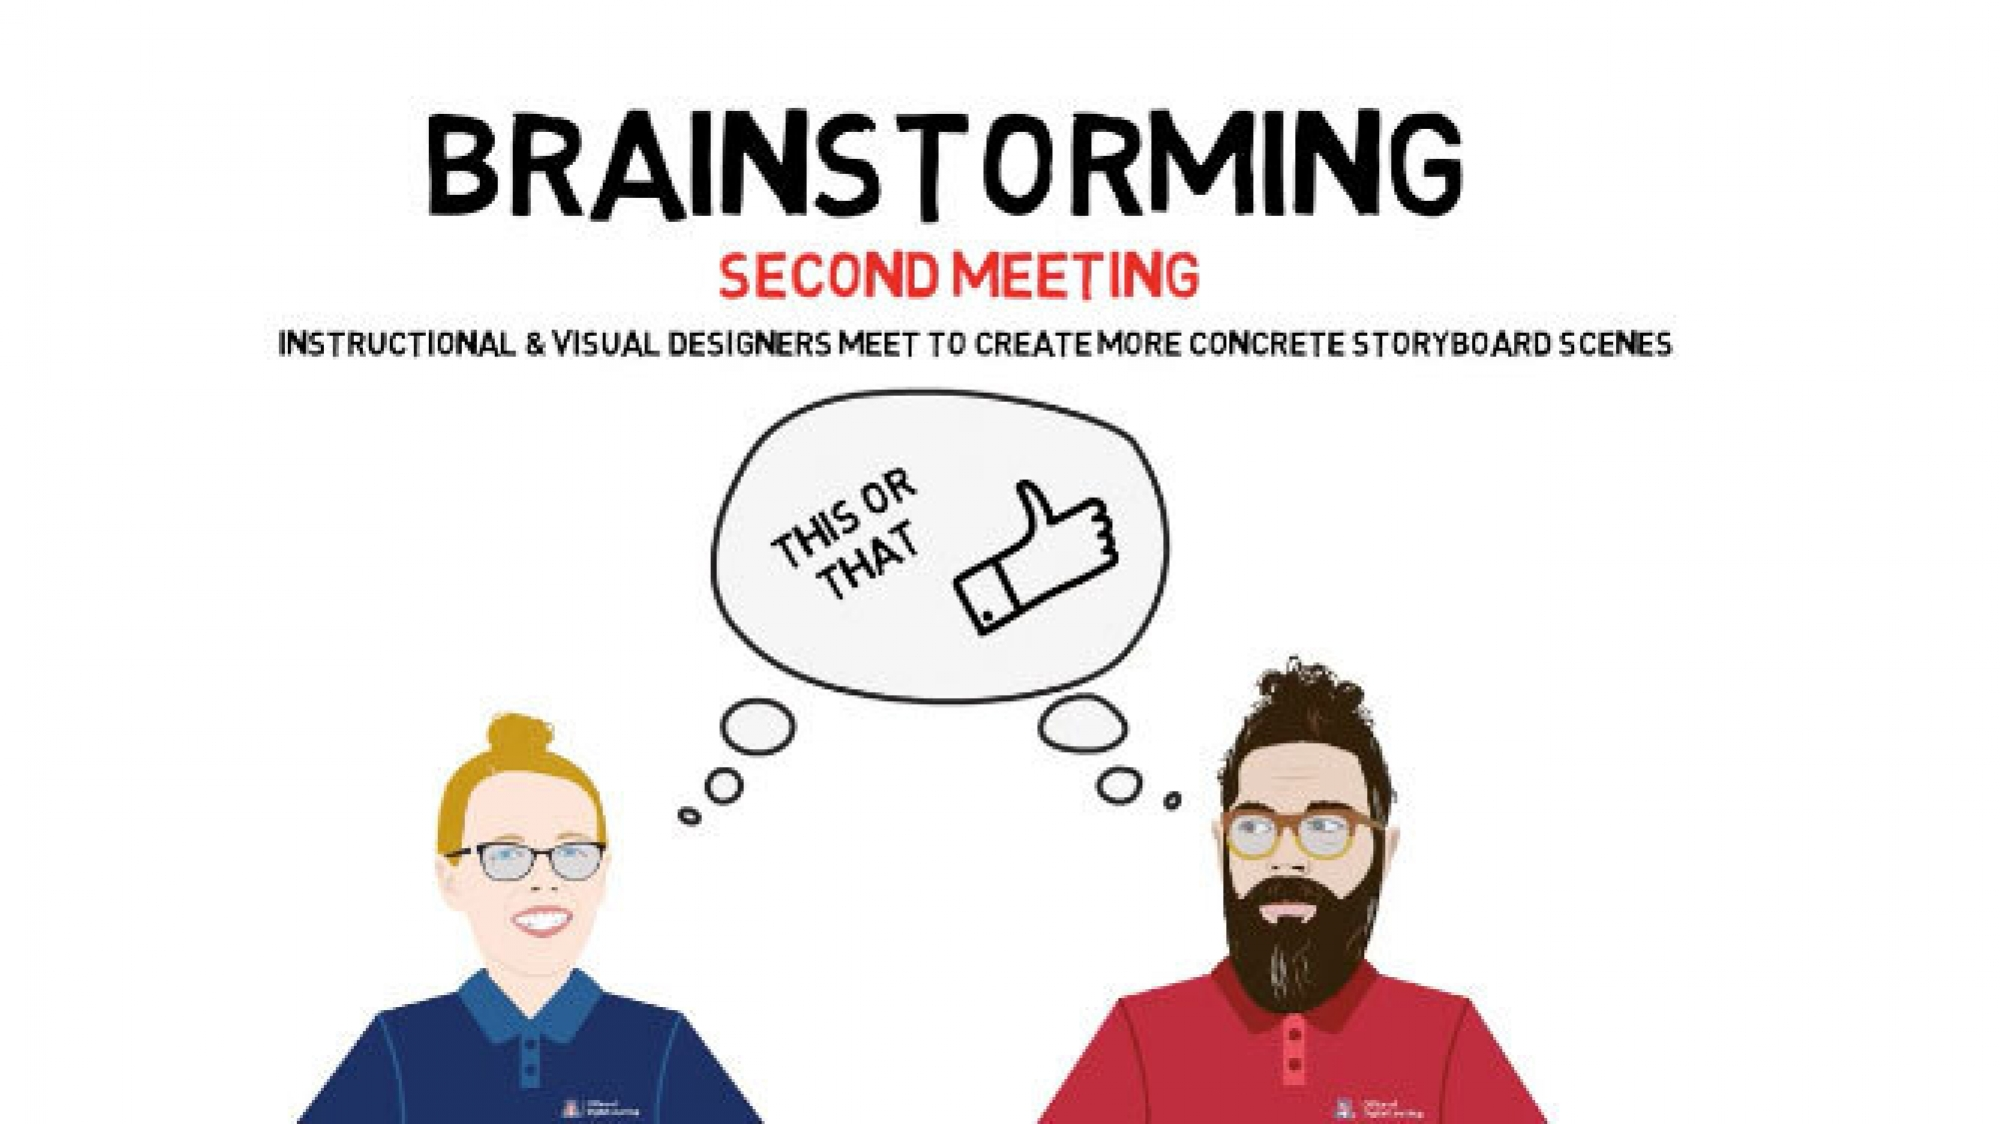 An illustration of two people brainstorming with a shared thought bubble